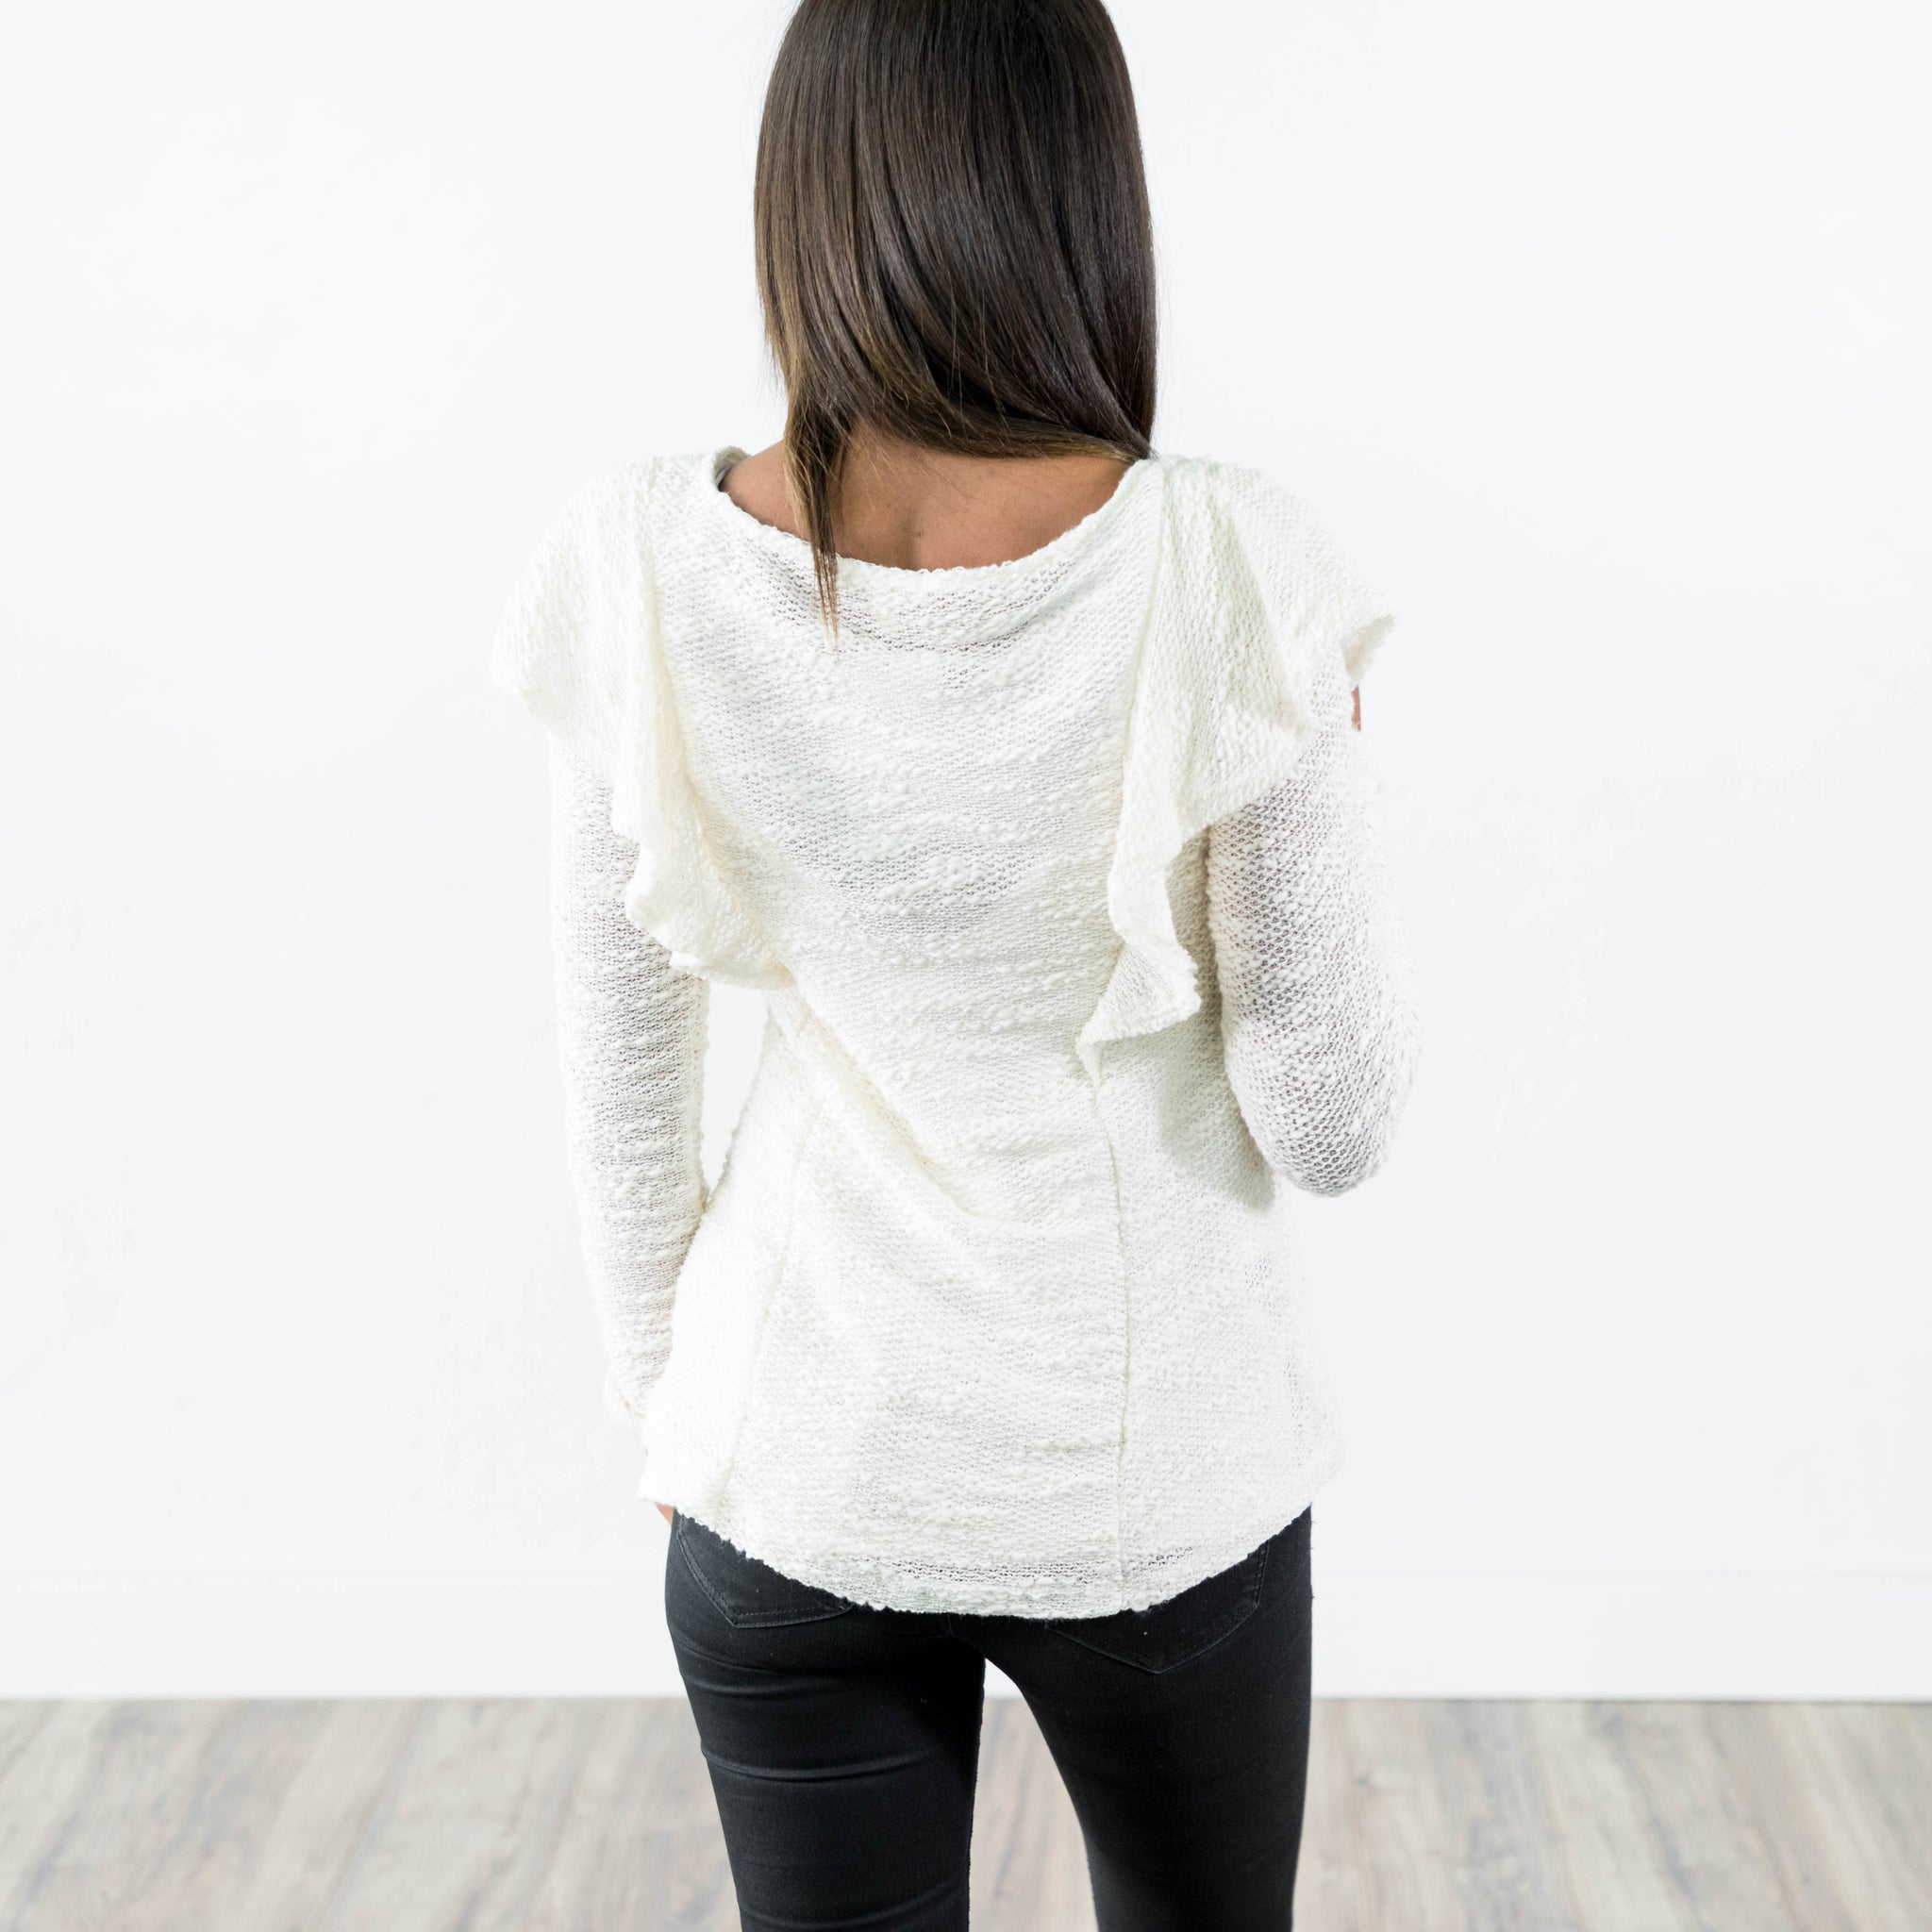 Melody Ruffle Top in Ivory